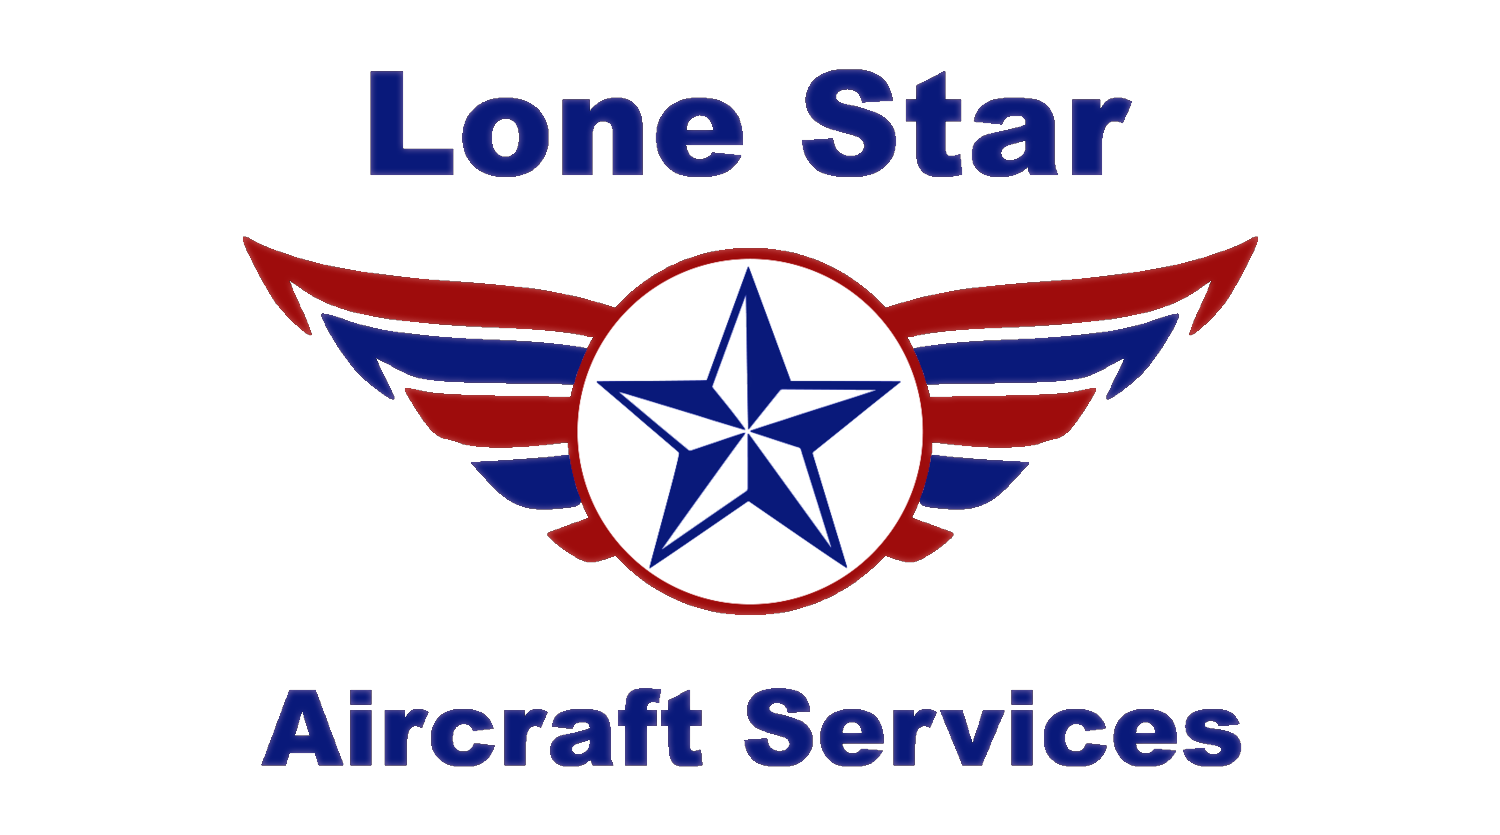 Lone Star Aircraft Services